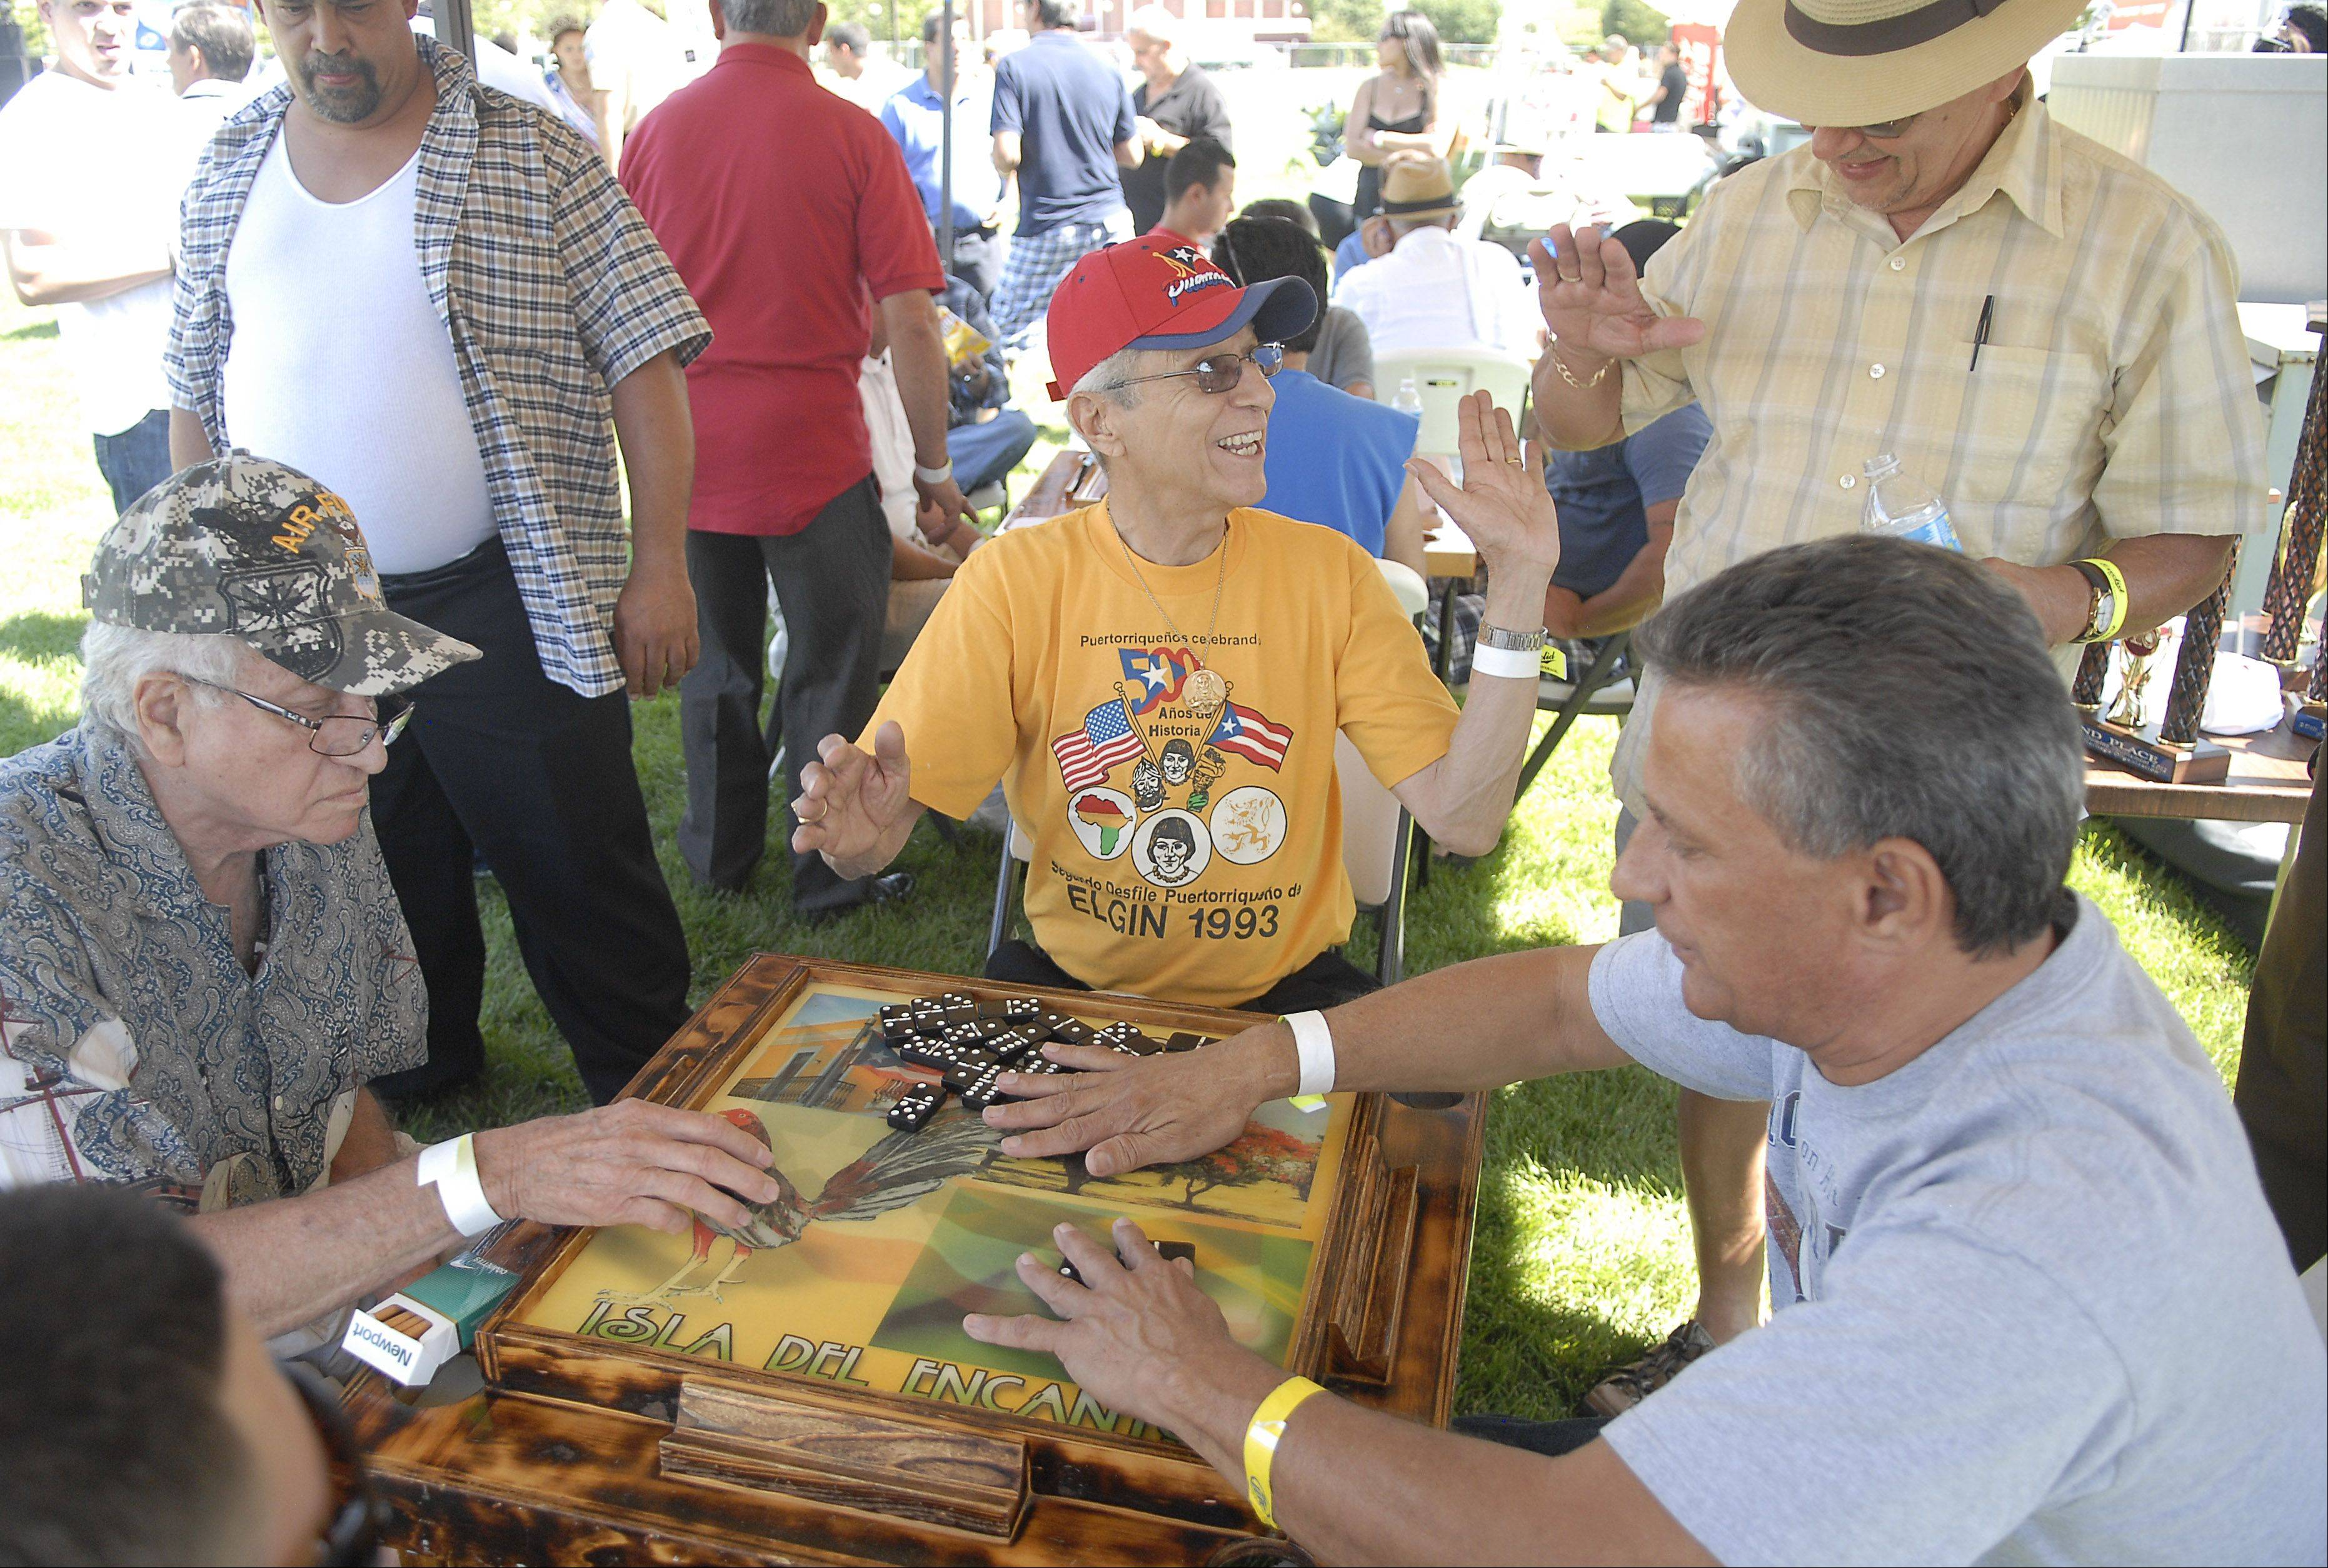 The traditional domino tournament, pictured at last year's BoriquaFest in Elgin, might be part of Elgin's iFest in late August.